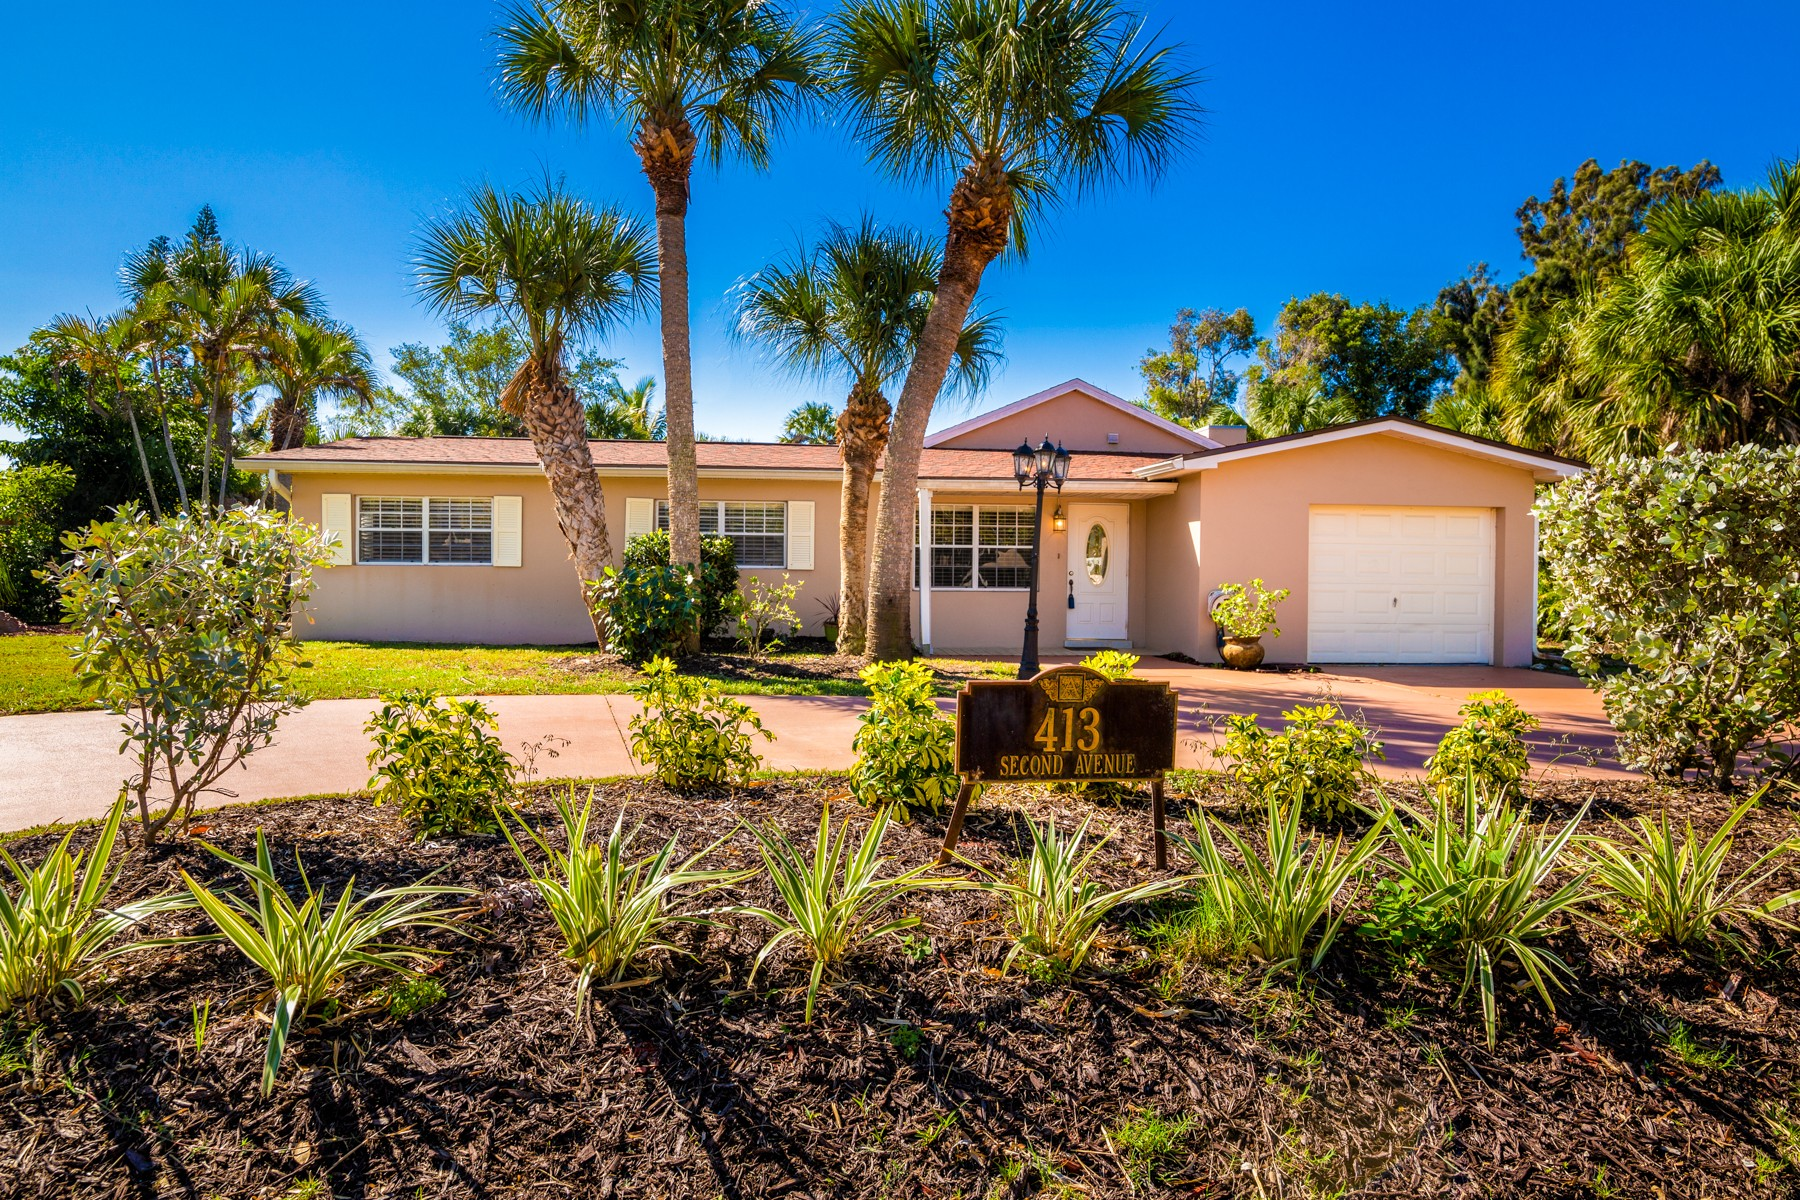 Single Family Home for Sale at Spacious Pool Home Ideal for Entertaining. 413 Second Avenue Melbourne Beach, Florida 32951 United States